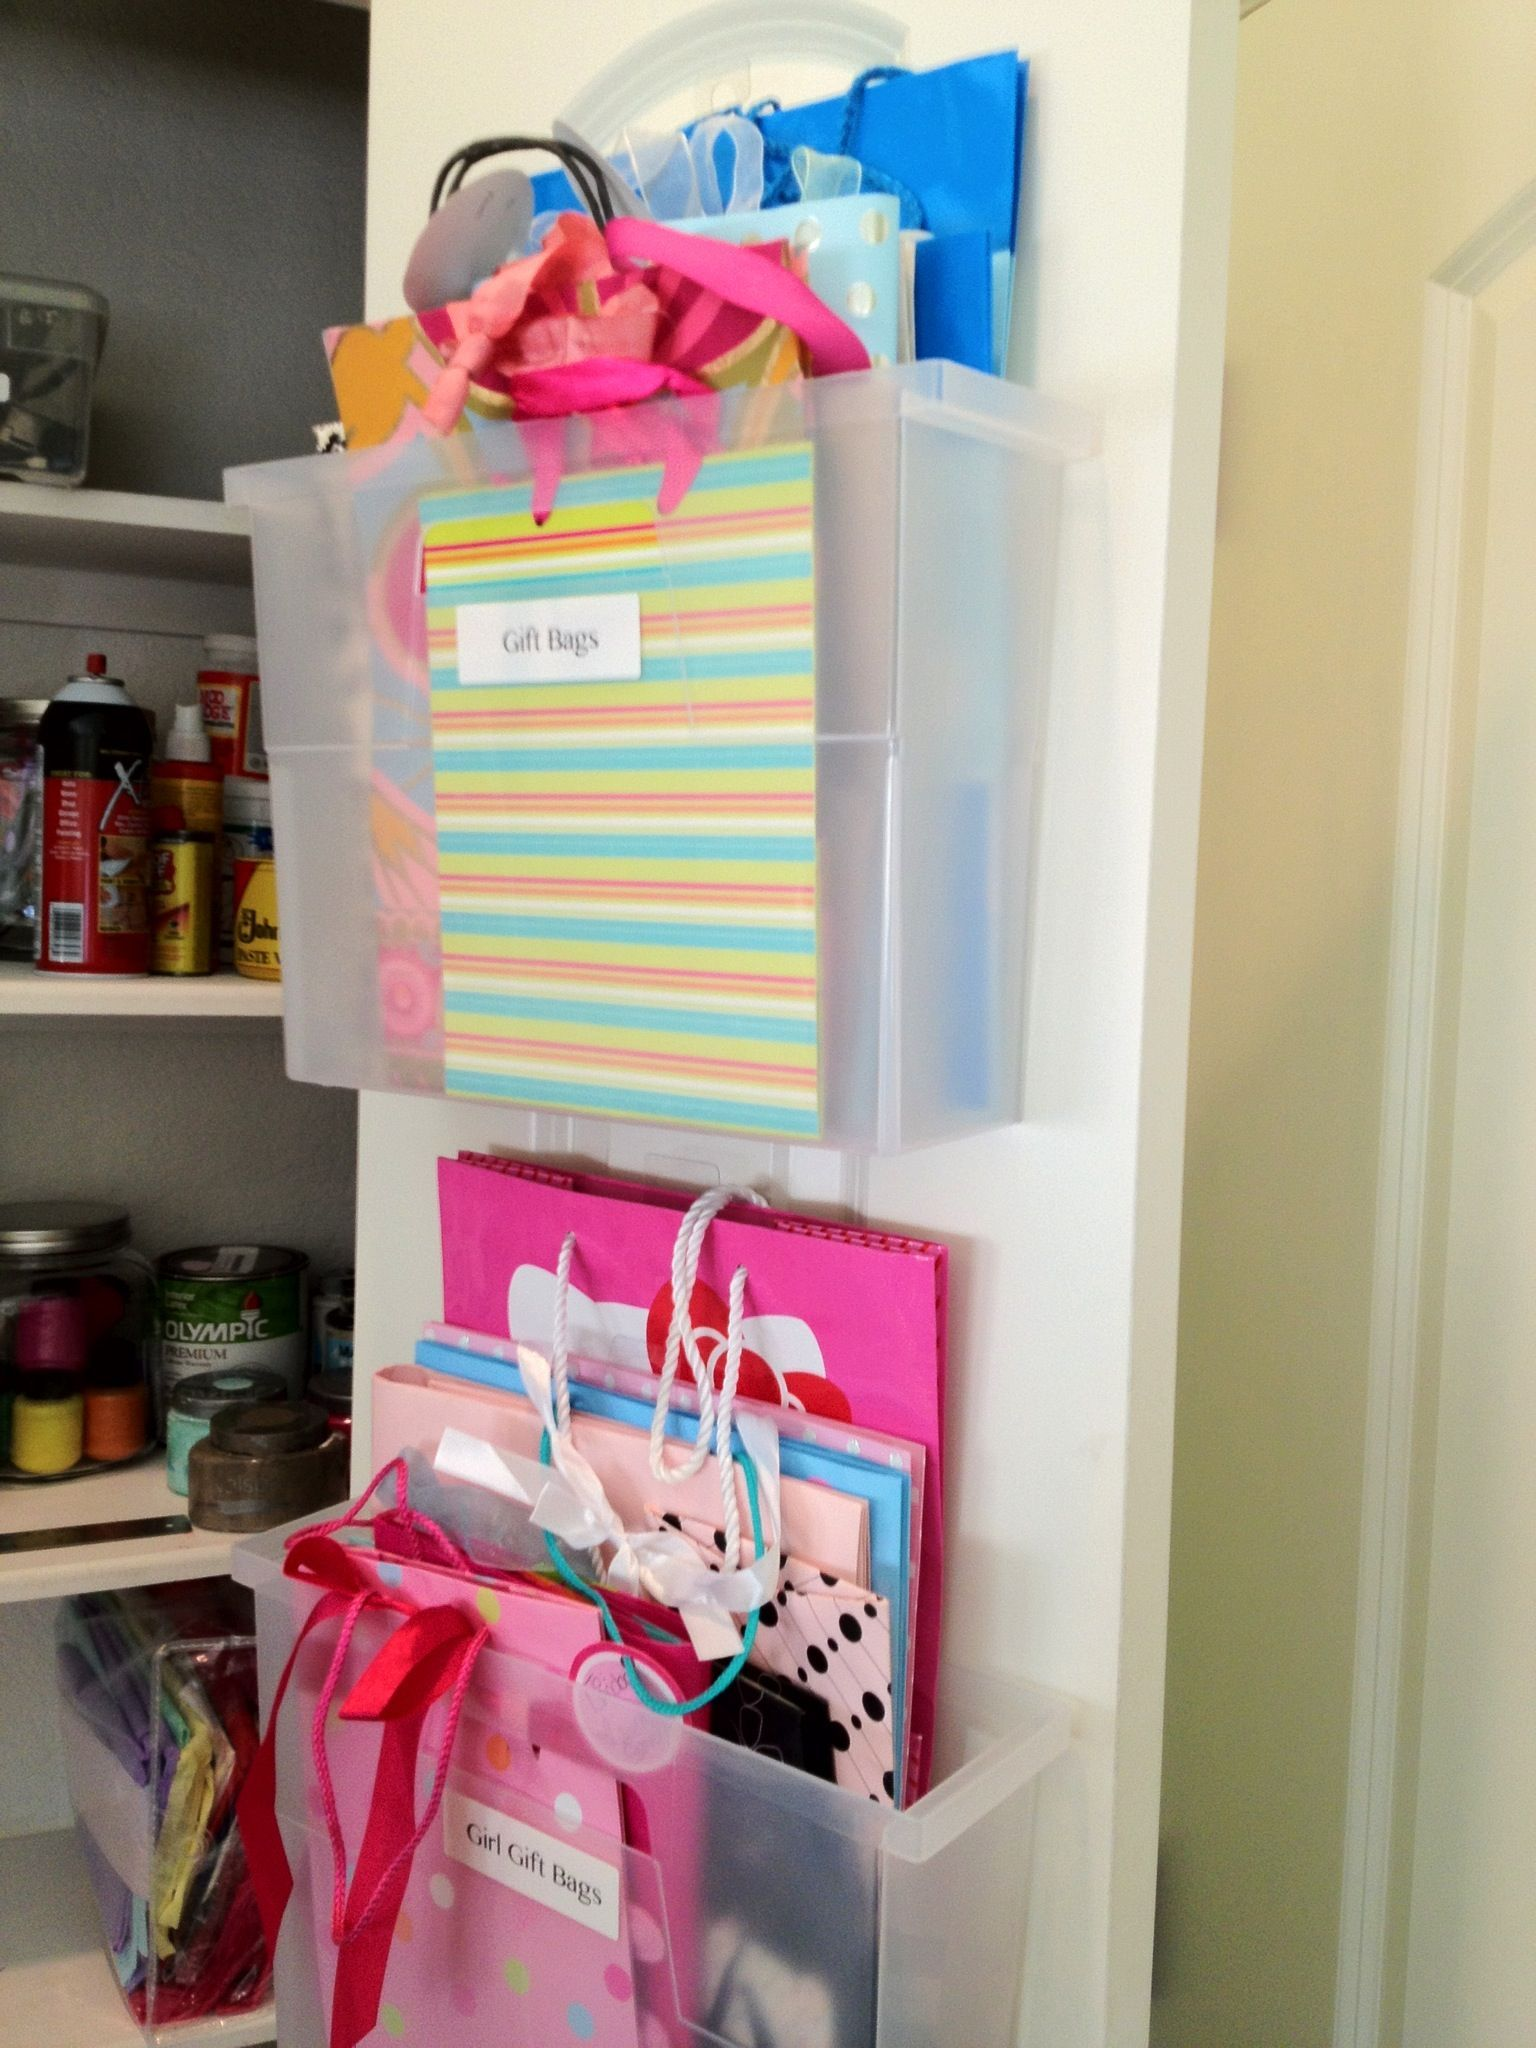 Best Christmas Gifts For Women Gifts For Women 30 List Of Christmas Gifts For Her Storage Closet Organization Gift Bag Storage Gift Bag Organization